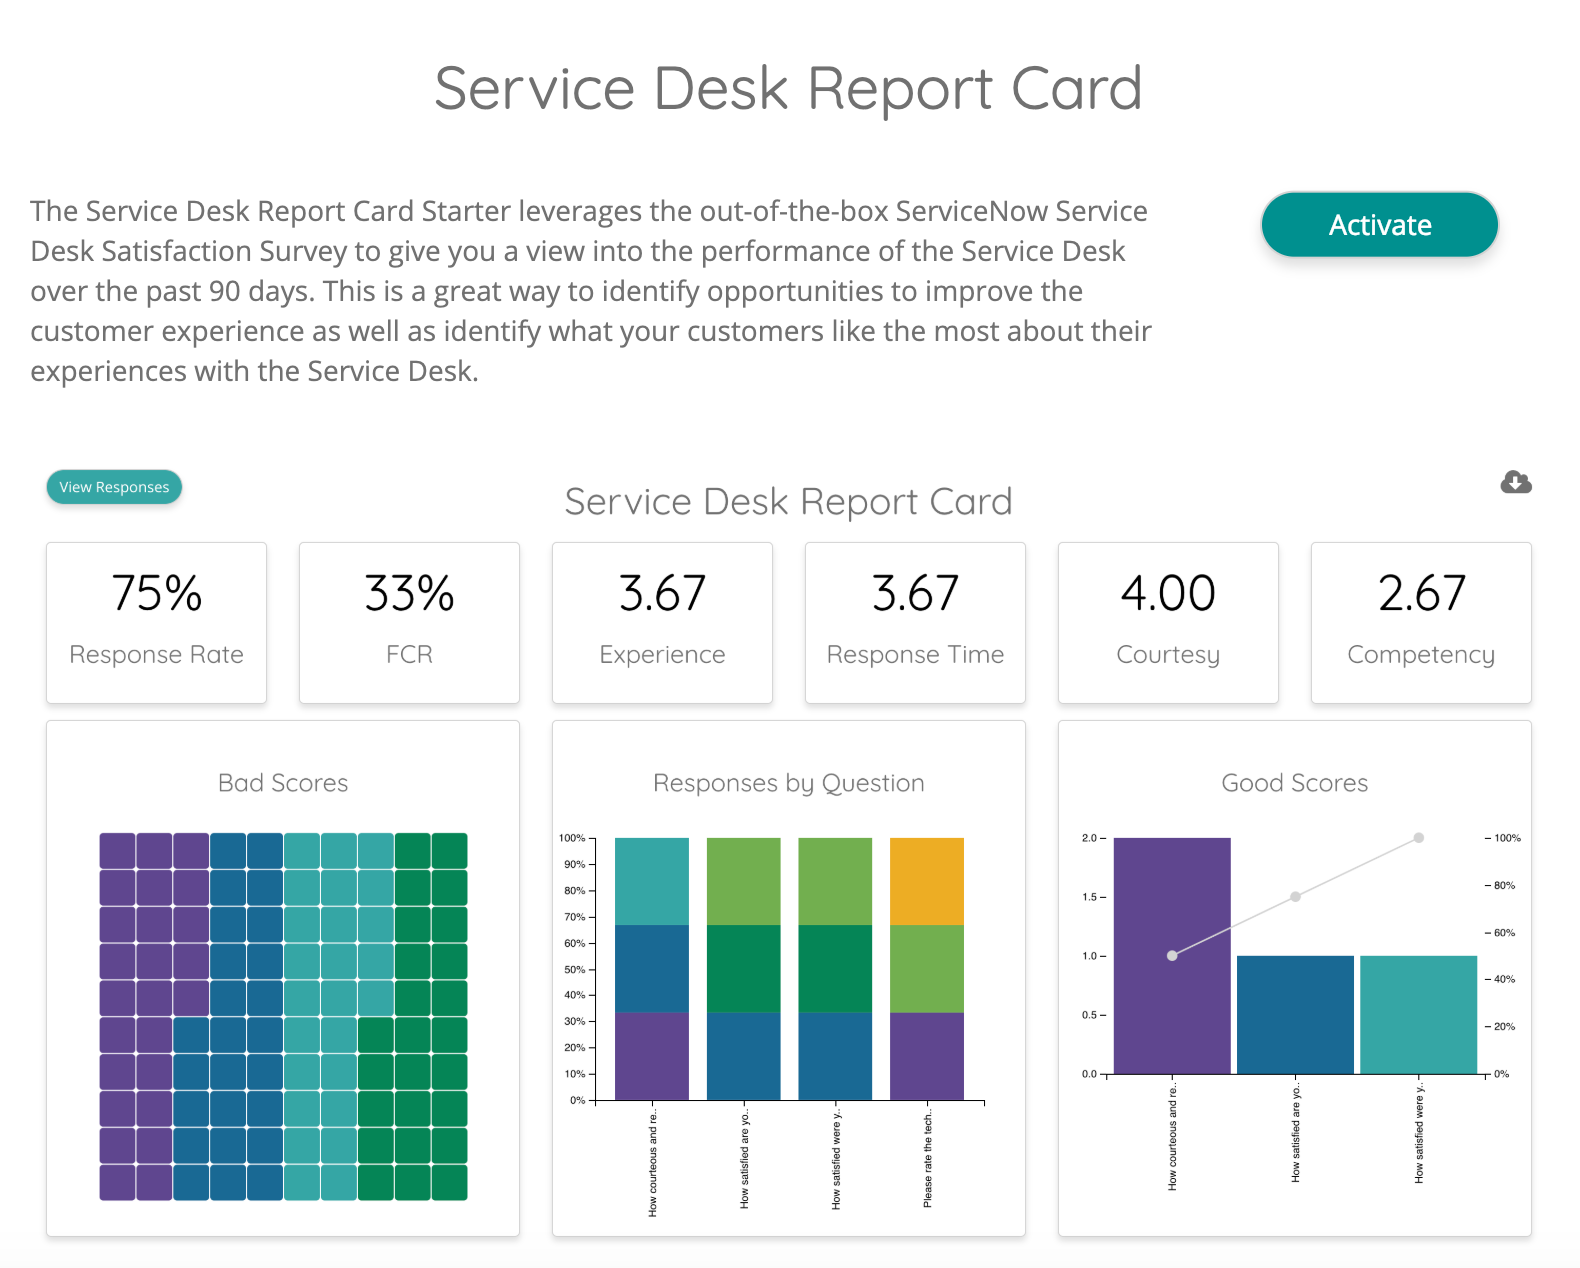 Value added reporting tool for ServiceNow by VividCharts